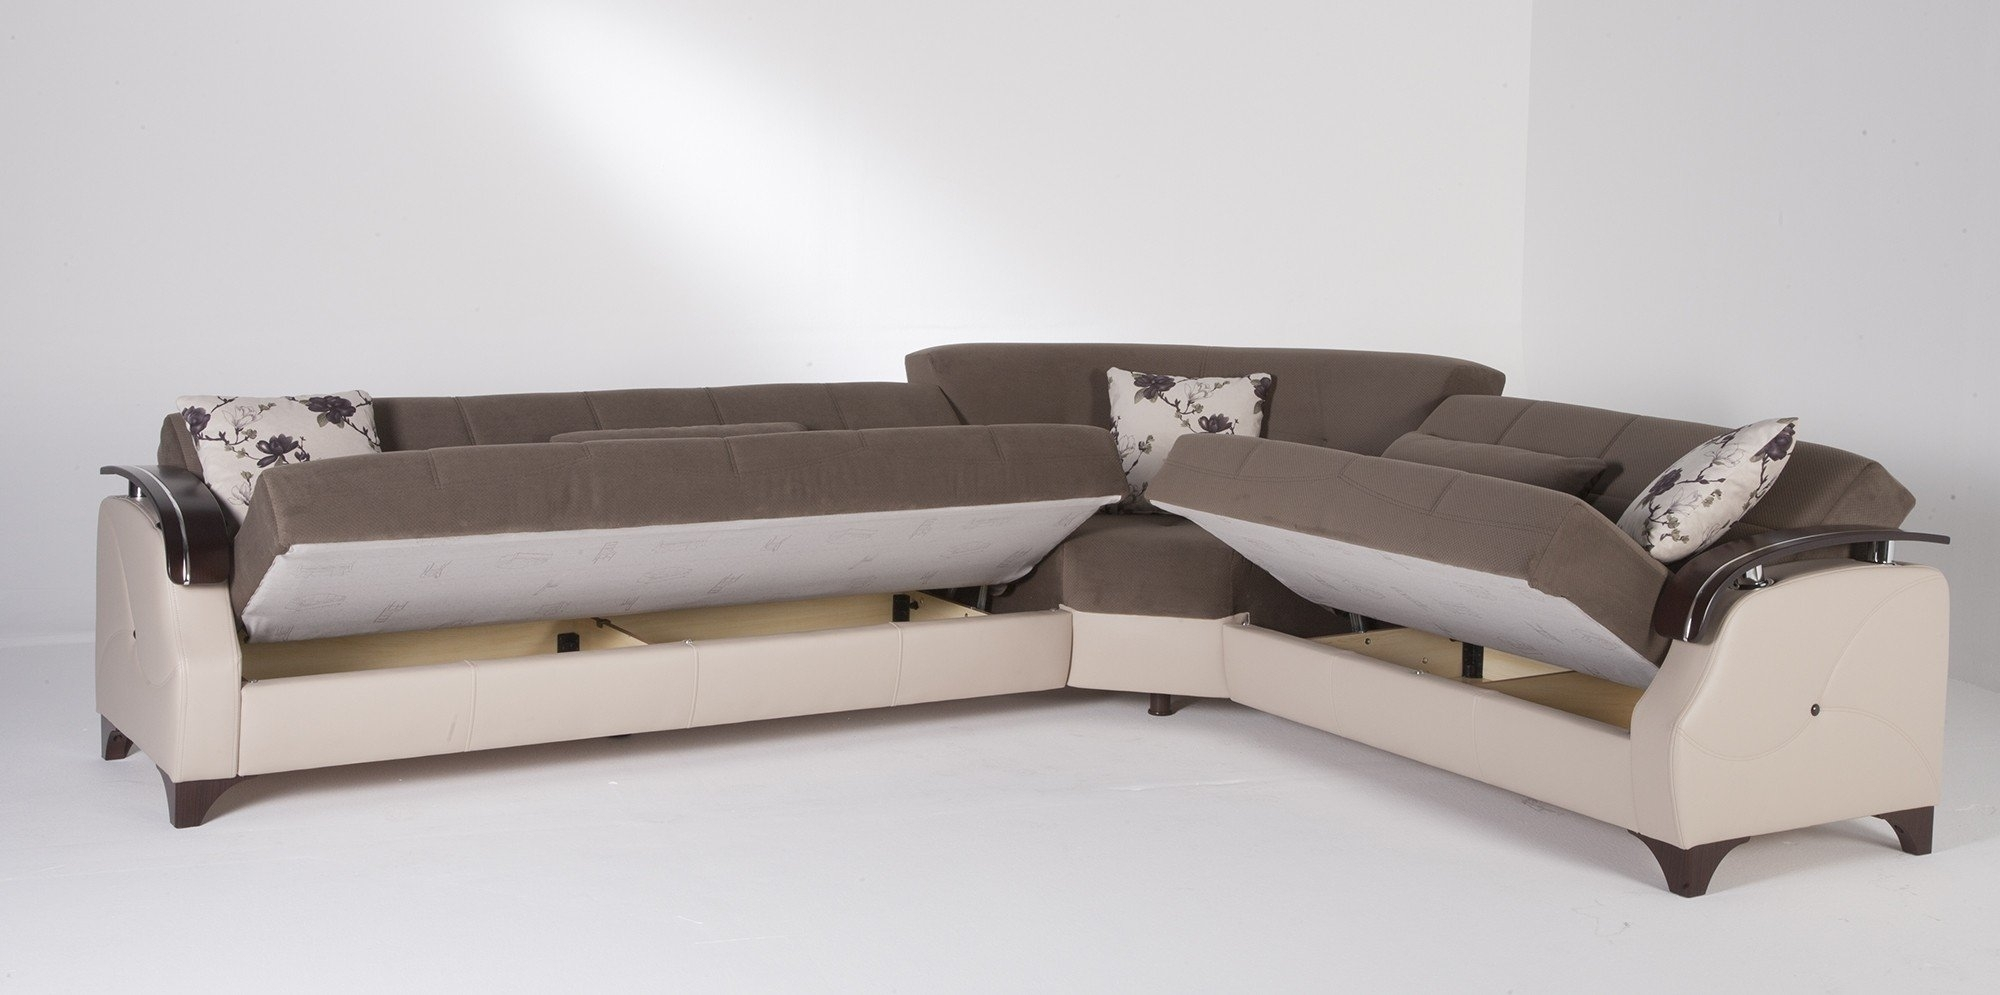 Sofas Cheap Sofa Sleepers Sleeper Sectional Sofa Comfortable With In Sectional Sofas With Sleeper (View 8 of 10)